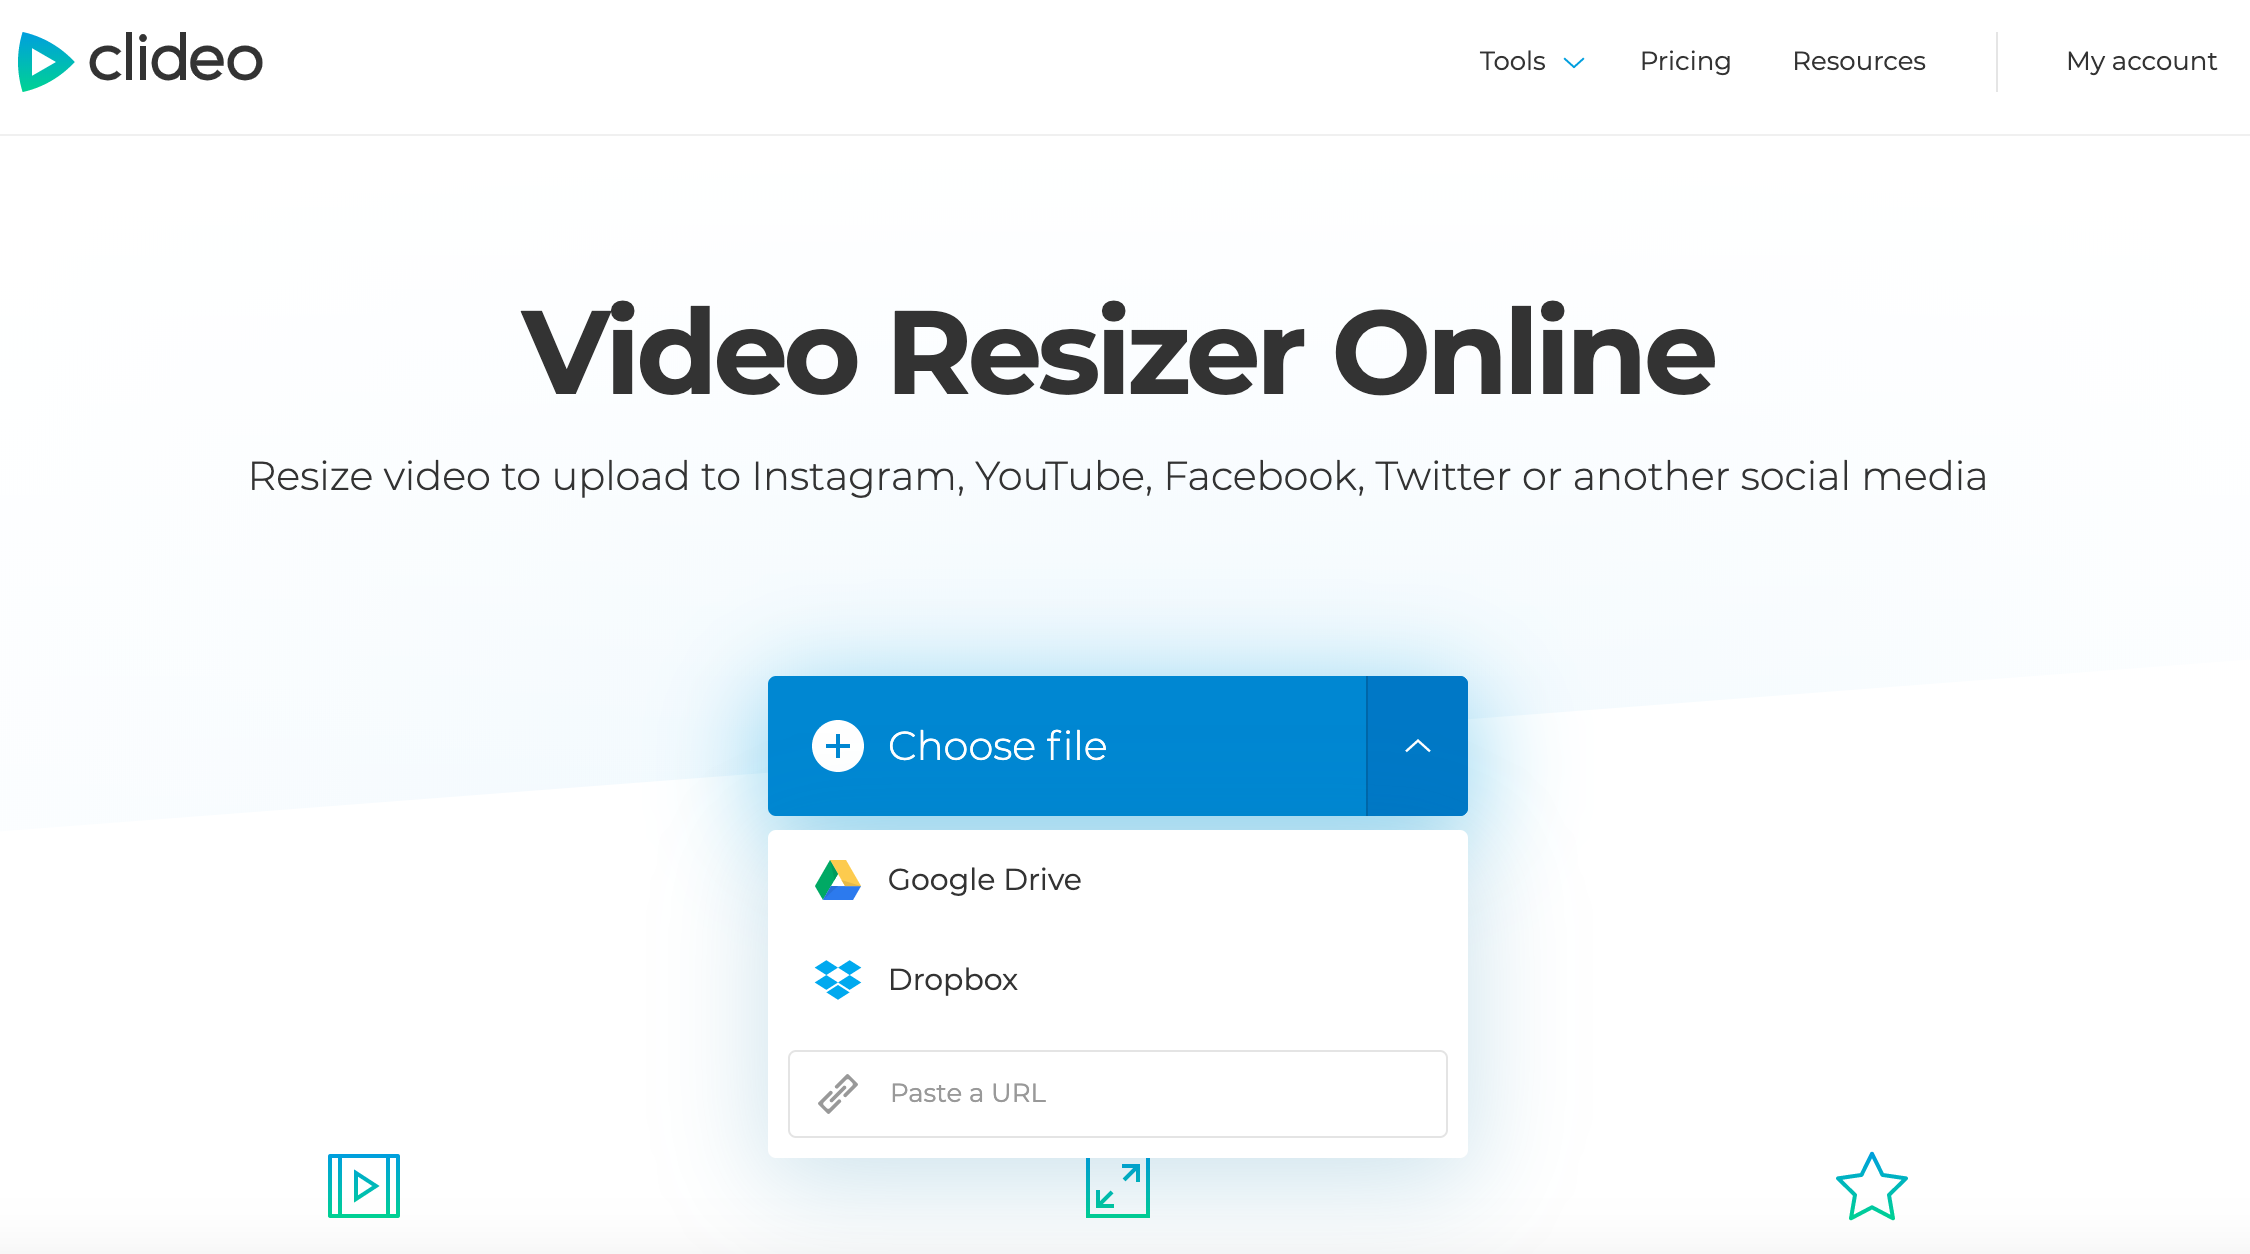 Upload a video you want to resize for Twitter